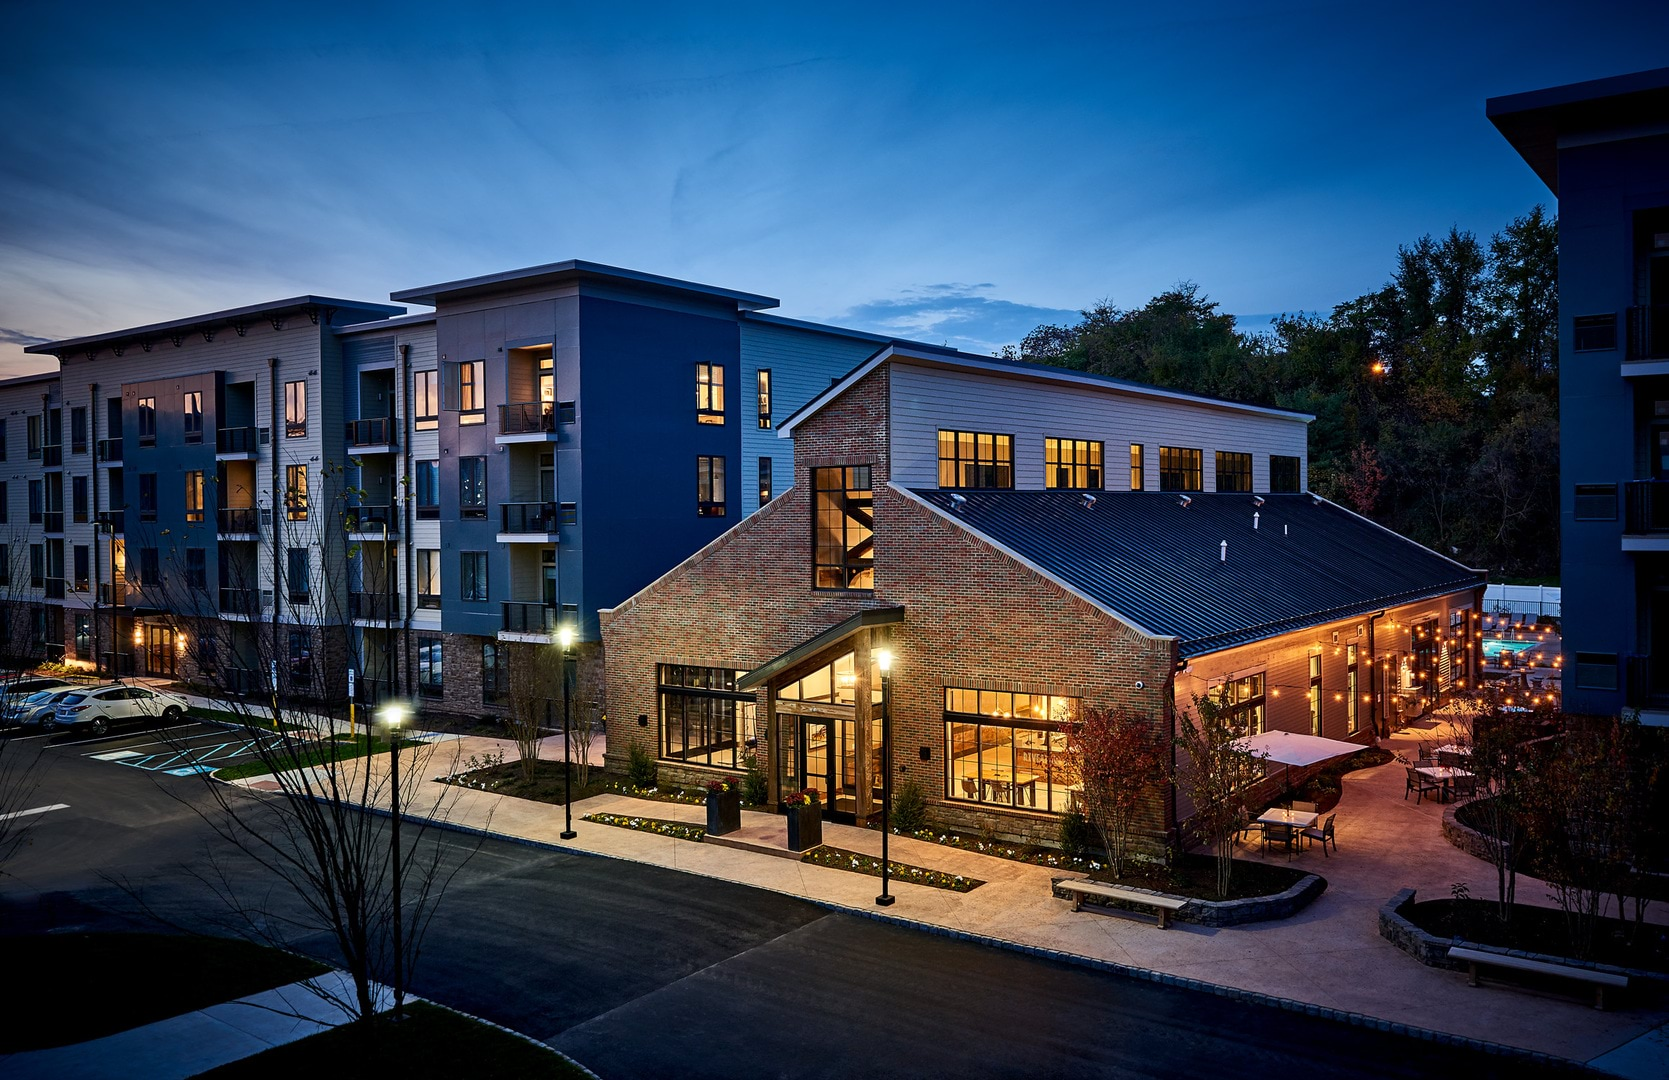 phoenixville chat rooms Enjoy luxury living at our brand new phoenixville, pa apartments boasting designer finishes in all our spacious floor plans and a location you can't beat.